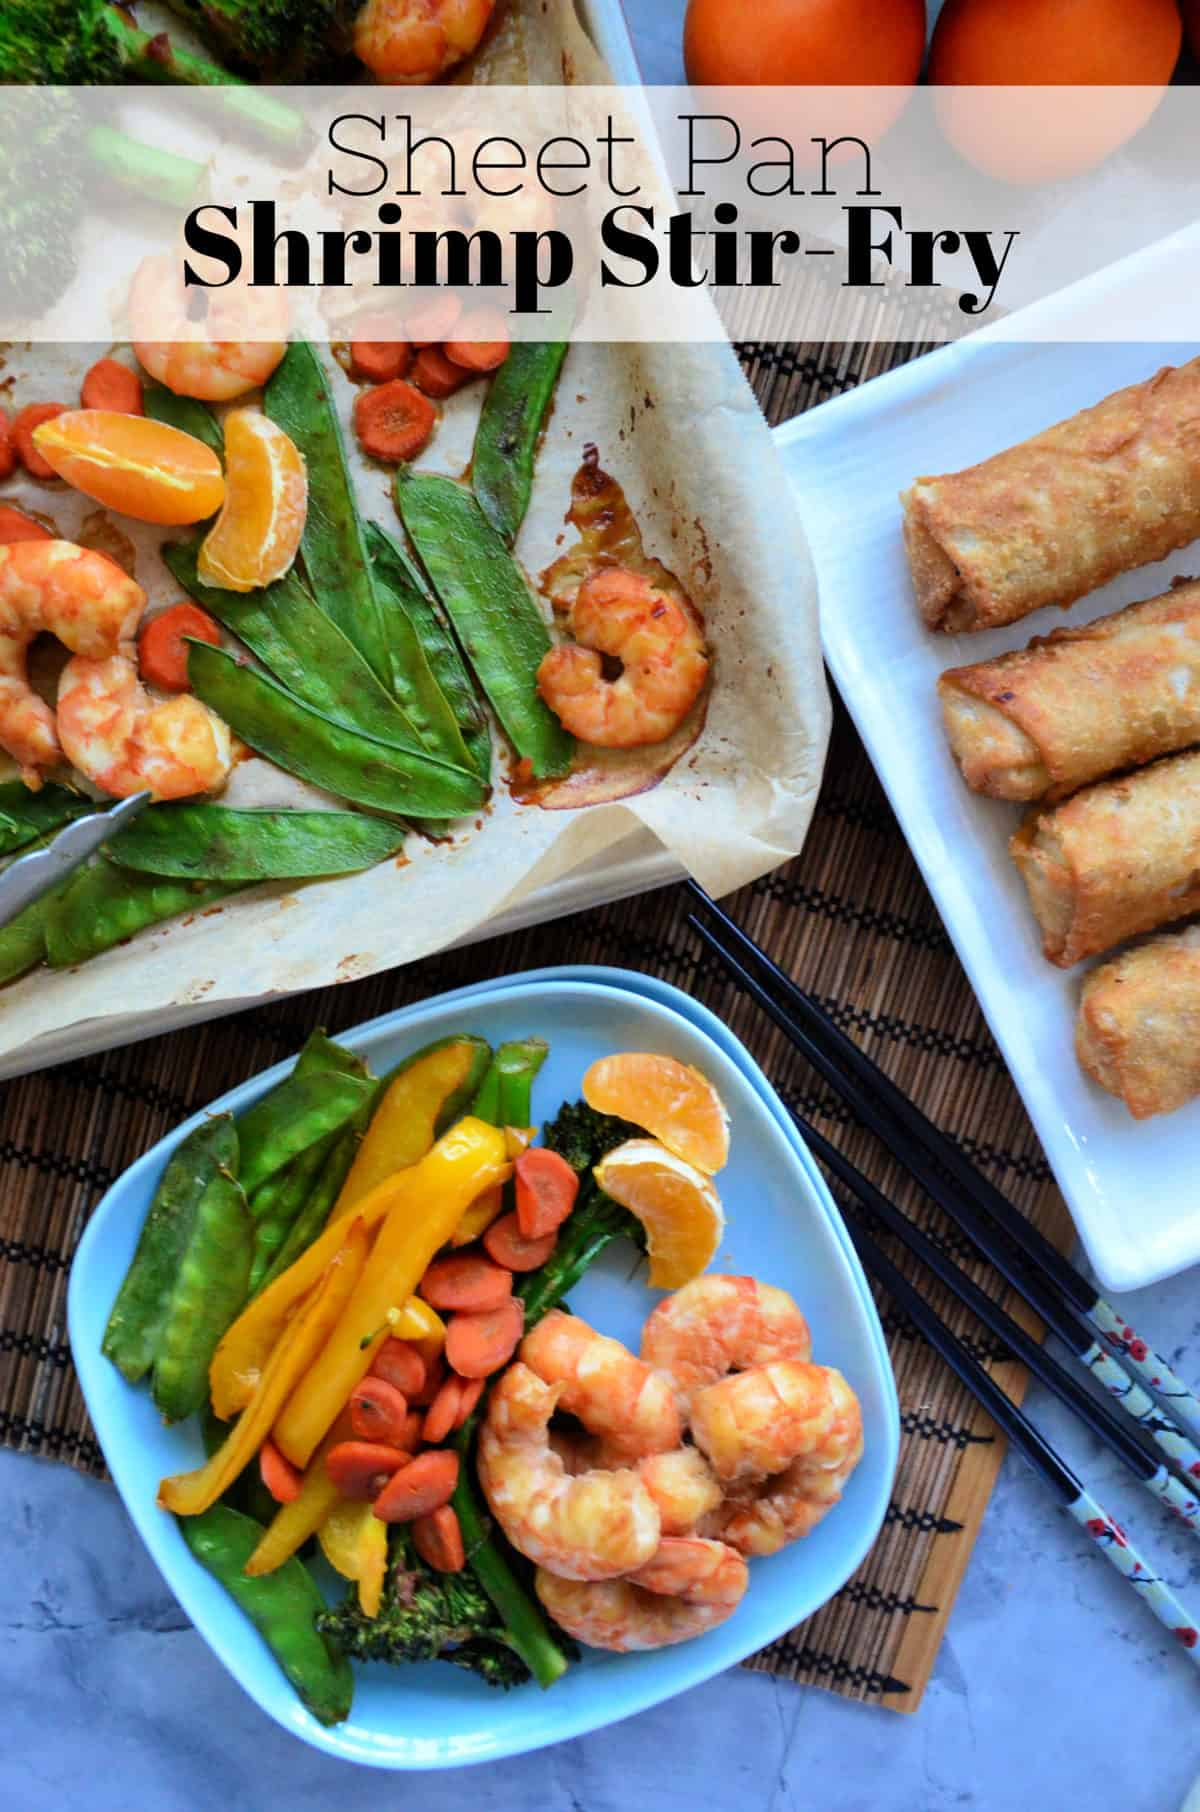 plated stir fried veggies and shrimp next to pan and platter of eggrolls with title text.